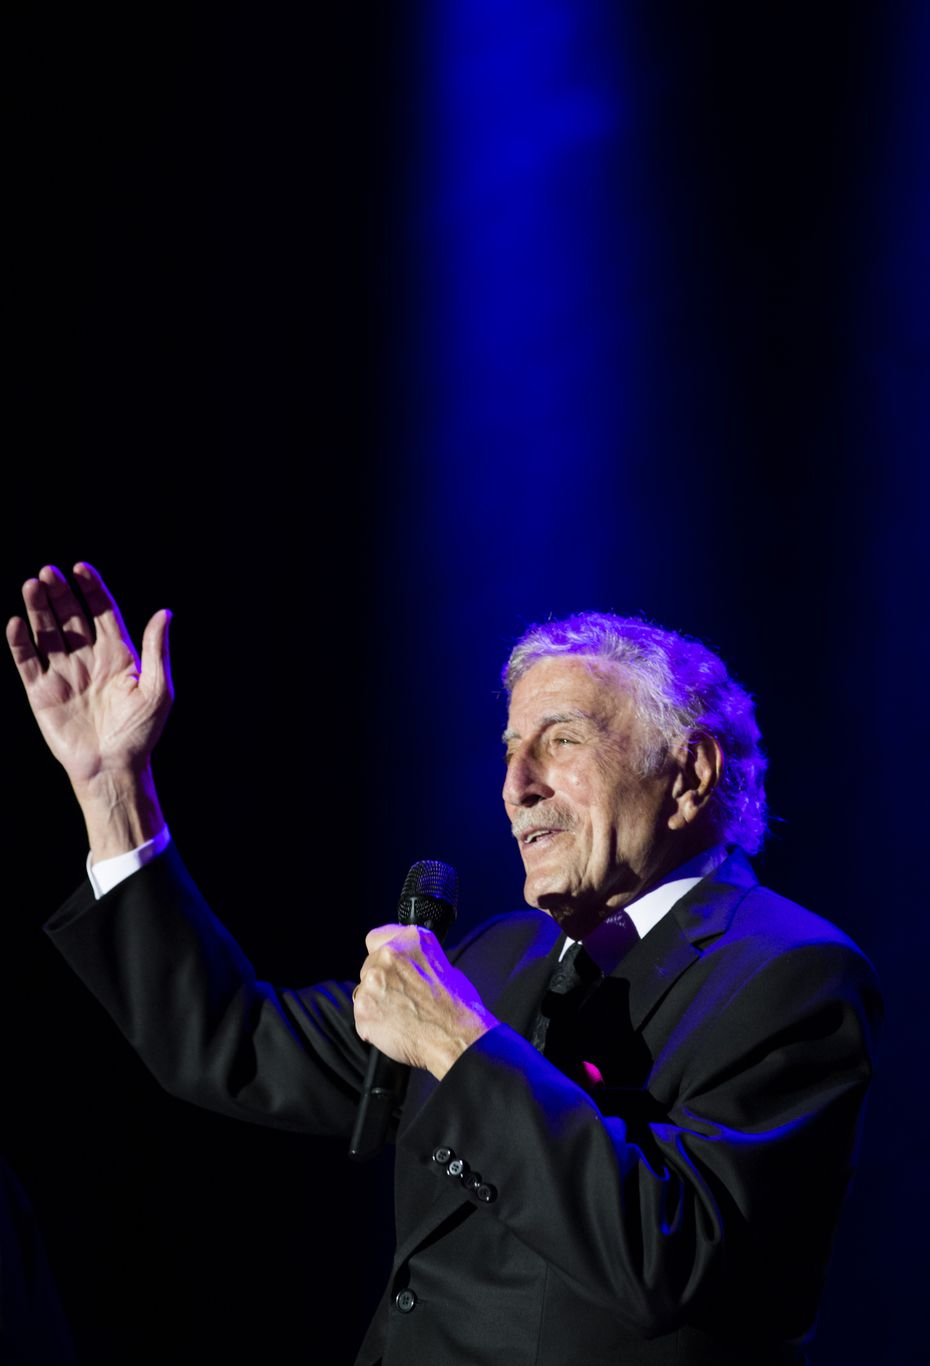 Tony Bennett returned to The Statler Hotel during the hotel's extravaganza week in March. The Grammy Award winner sang at the original grand opening celebration decades ago.